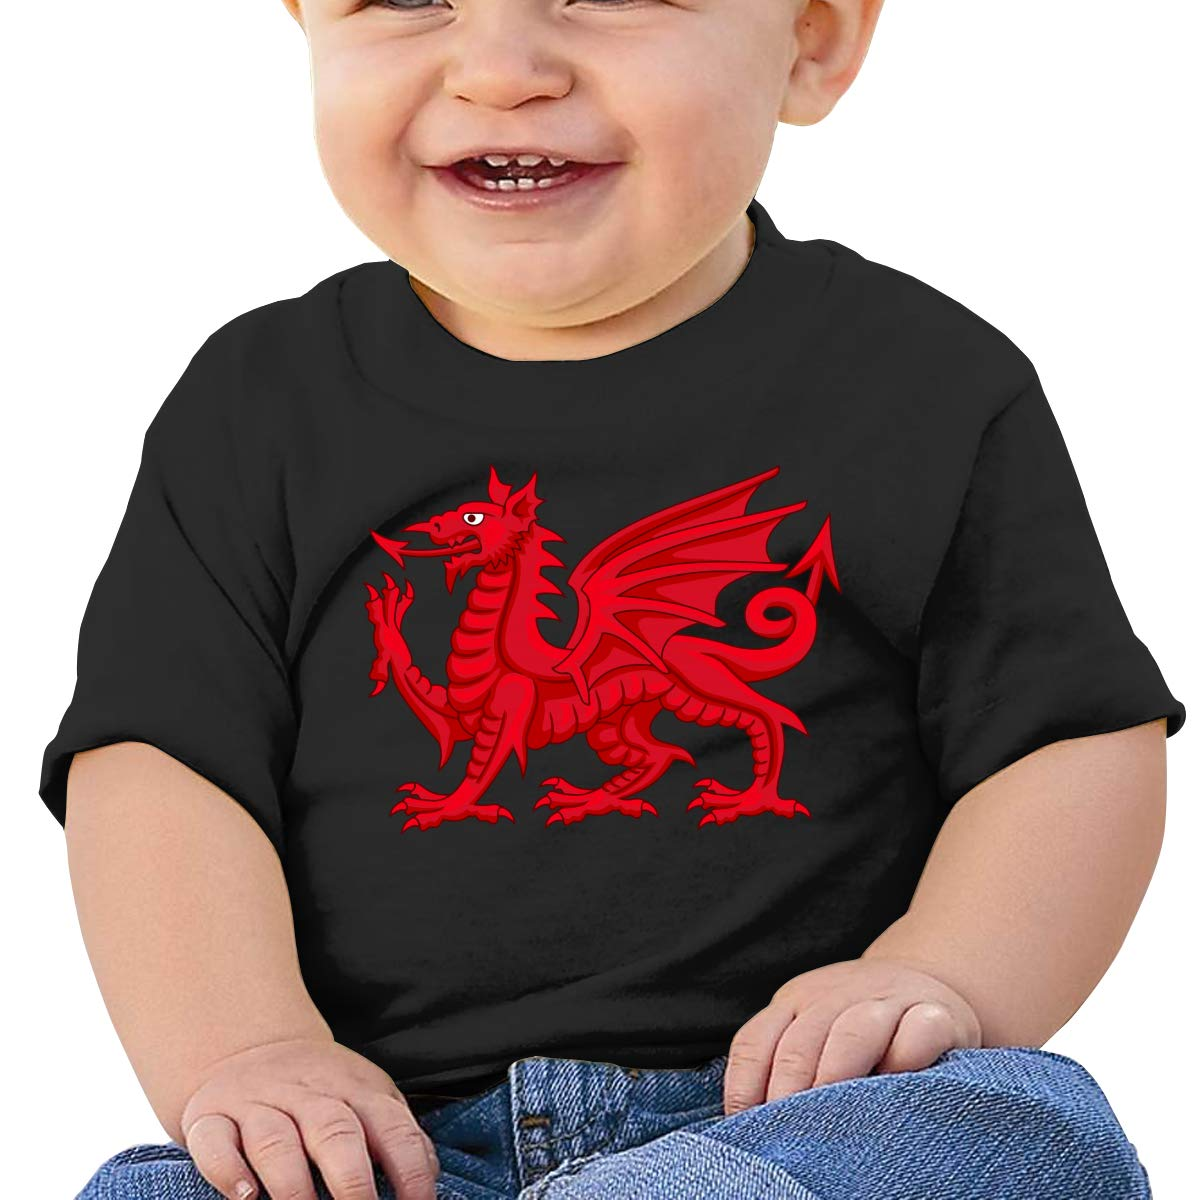 Welsh Dragon Newborn Baby Short Sleeve Crew Neck T Shirts 6-18 Month Tops